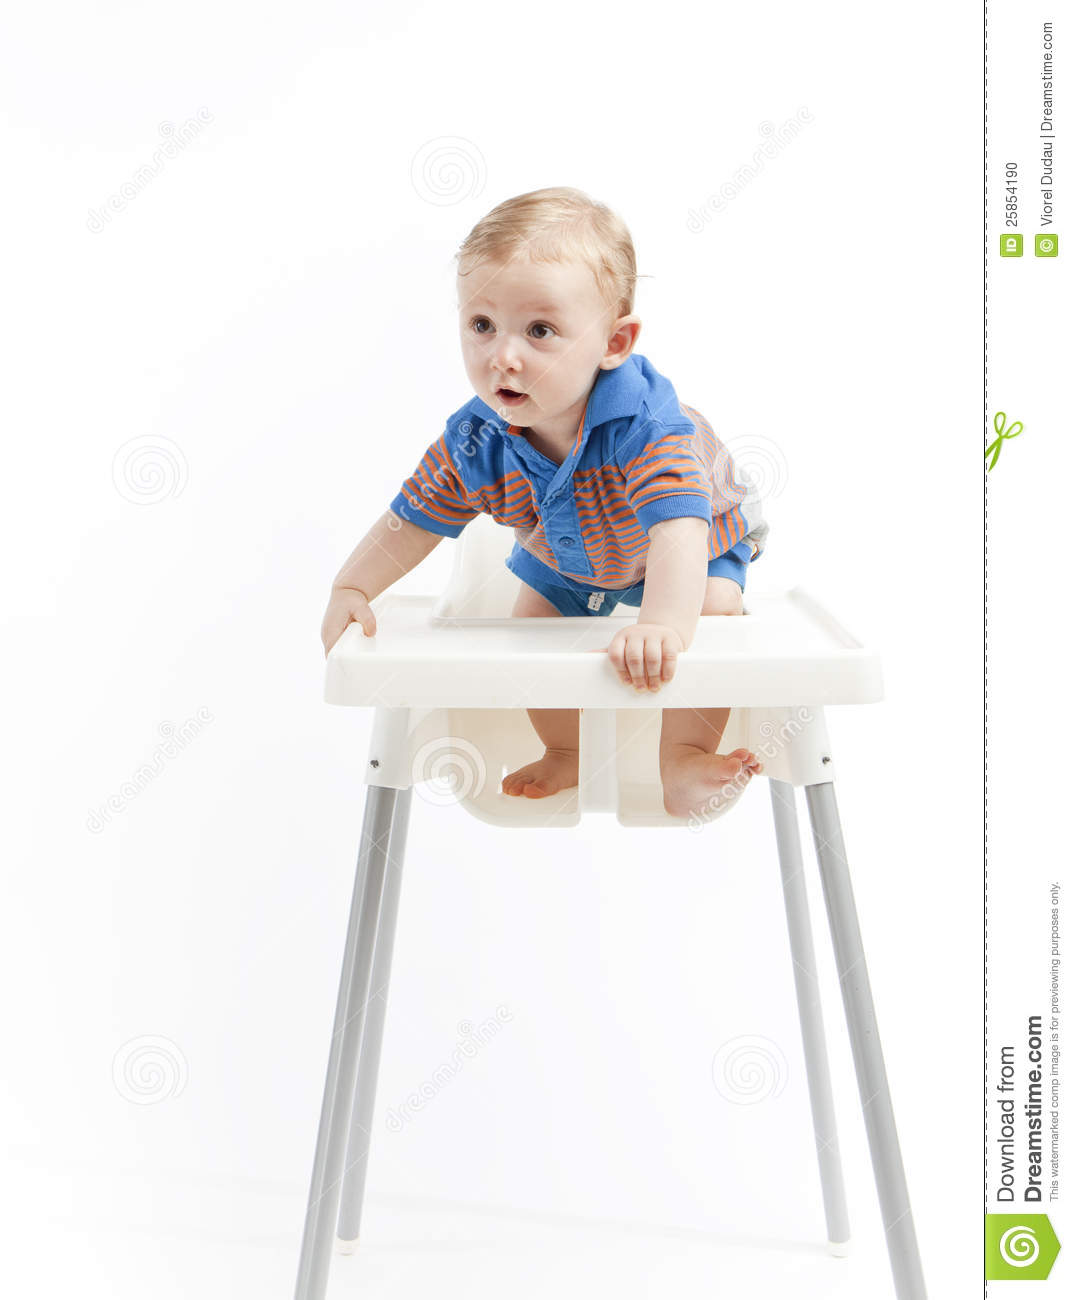 Cute young baby boy climbing in high chair, white studio background.